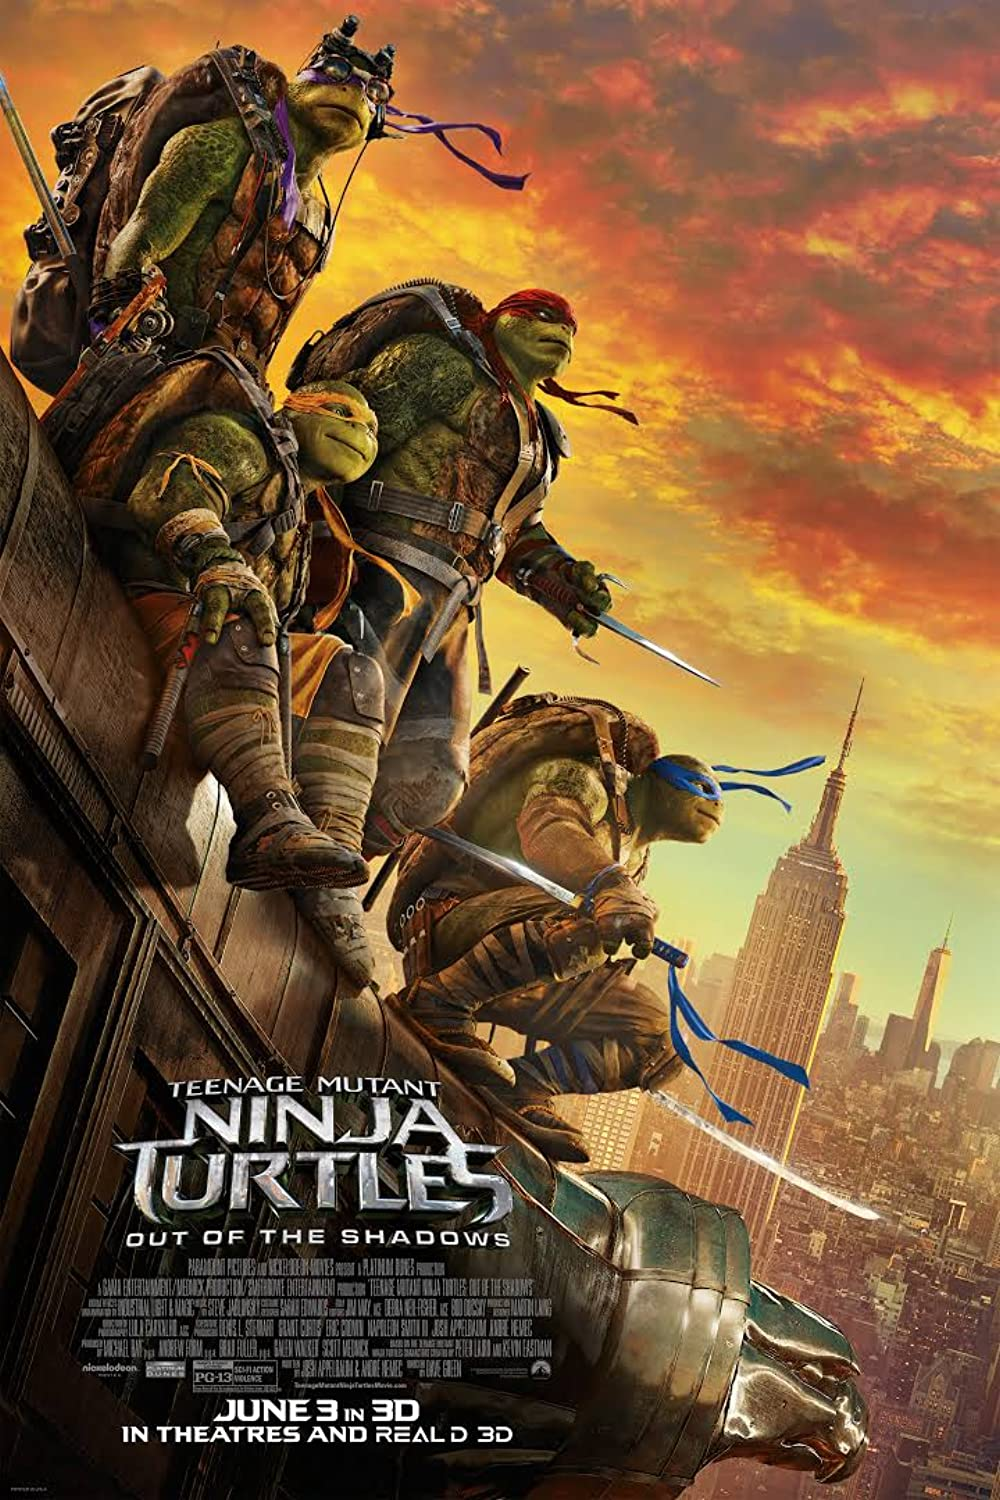 Teenage-Mutant-Ninja-Turtles-Out-of-the-Shadows-2021